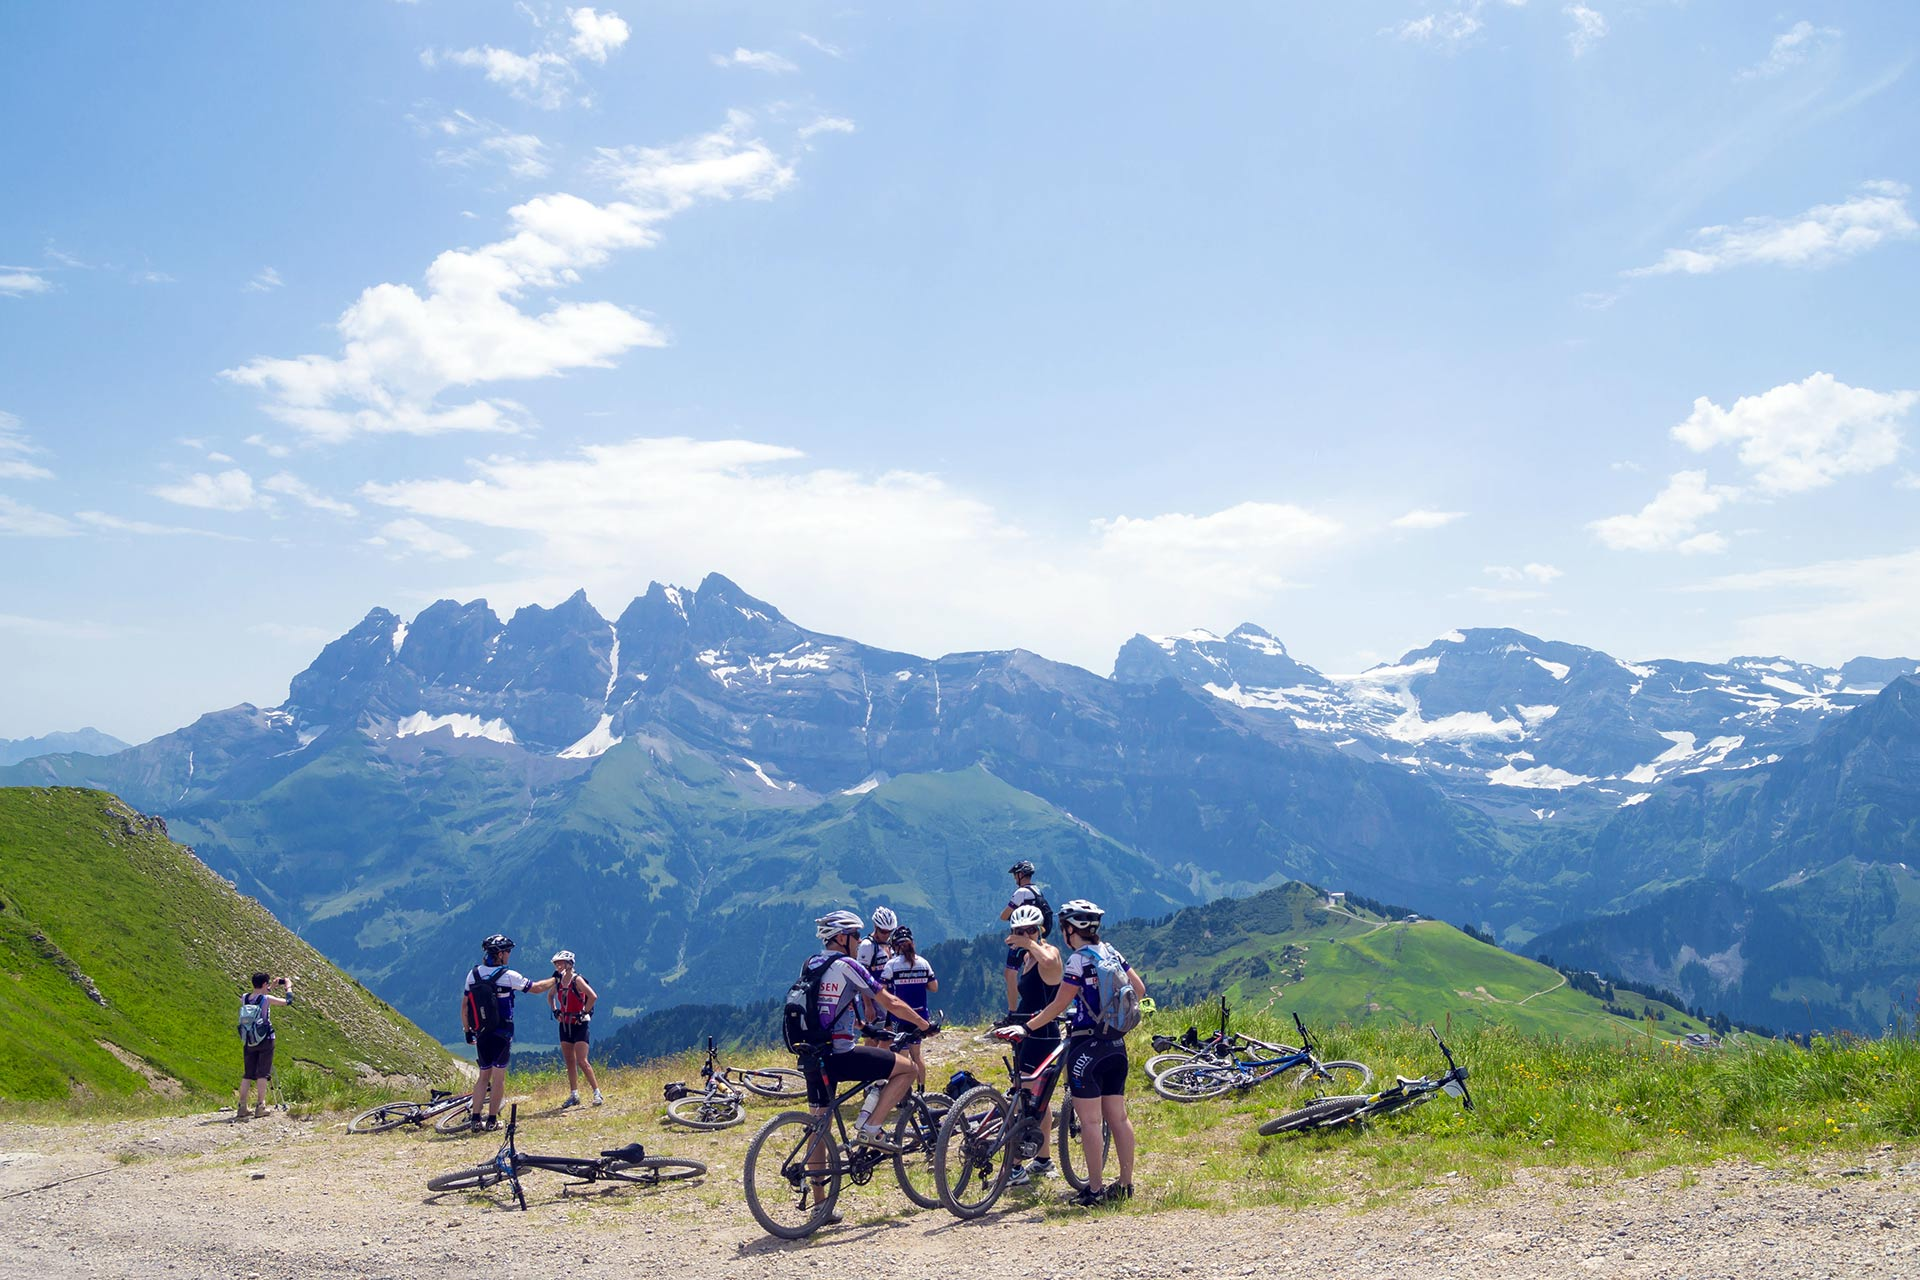 Bikers on the trail in Swiss Alps, Portes du Soleil region touristic